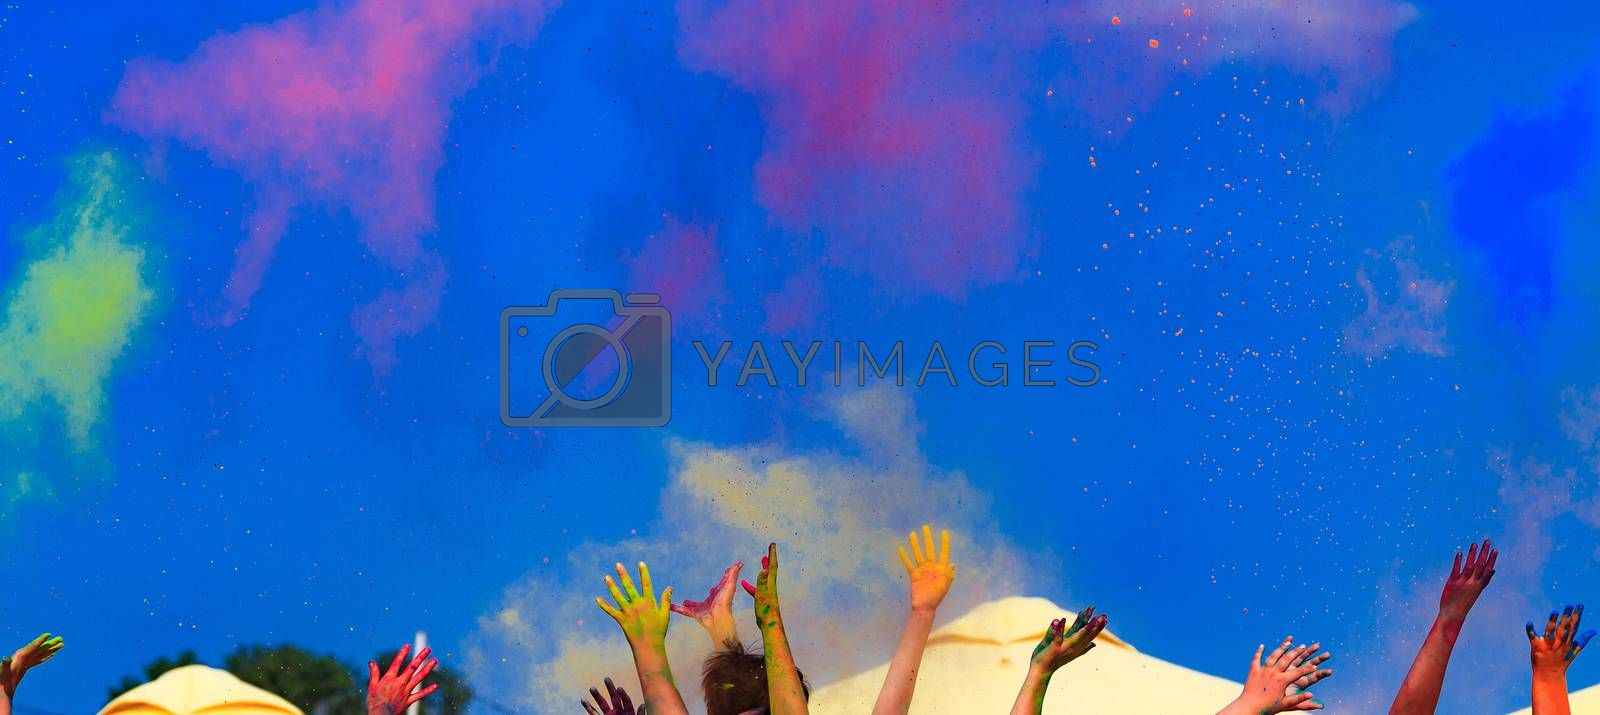 At the color Holi festival, hands in the air, blue sky behind by Nobilior